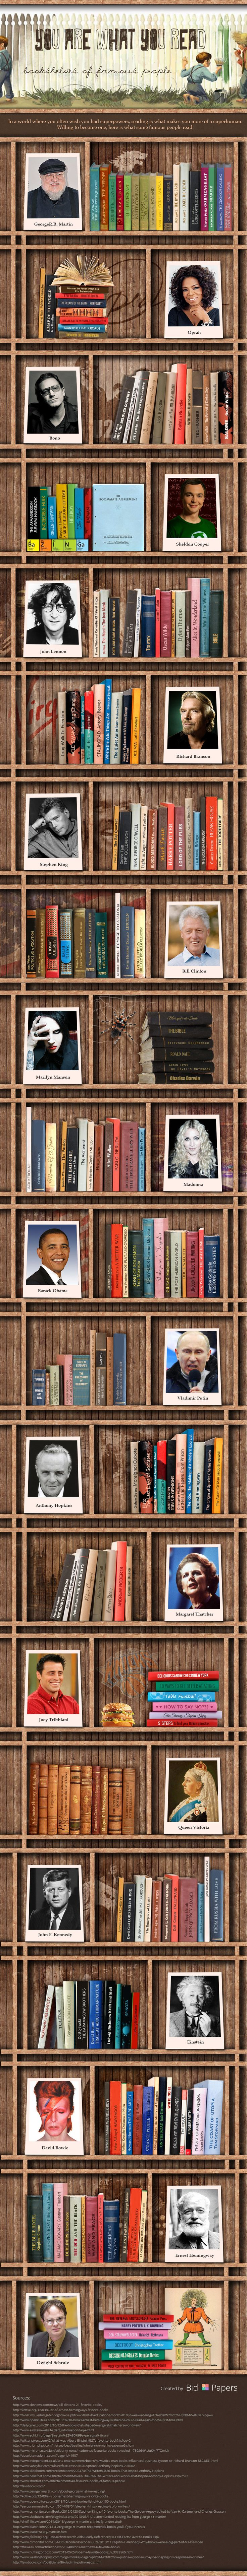 You Are What You Read: Bookshelves of Famous People (and characters).  #amreading #book #humor